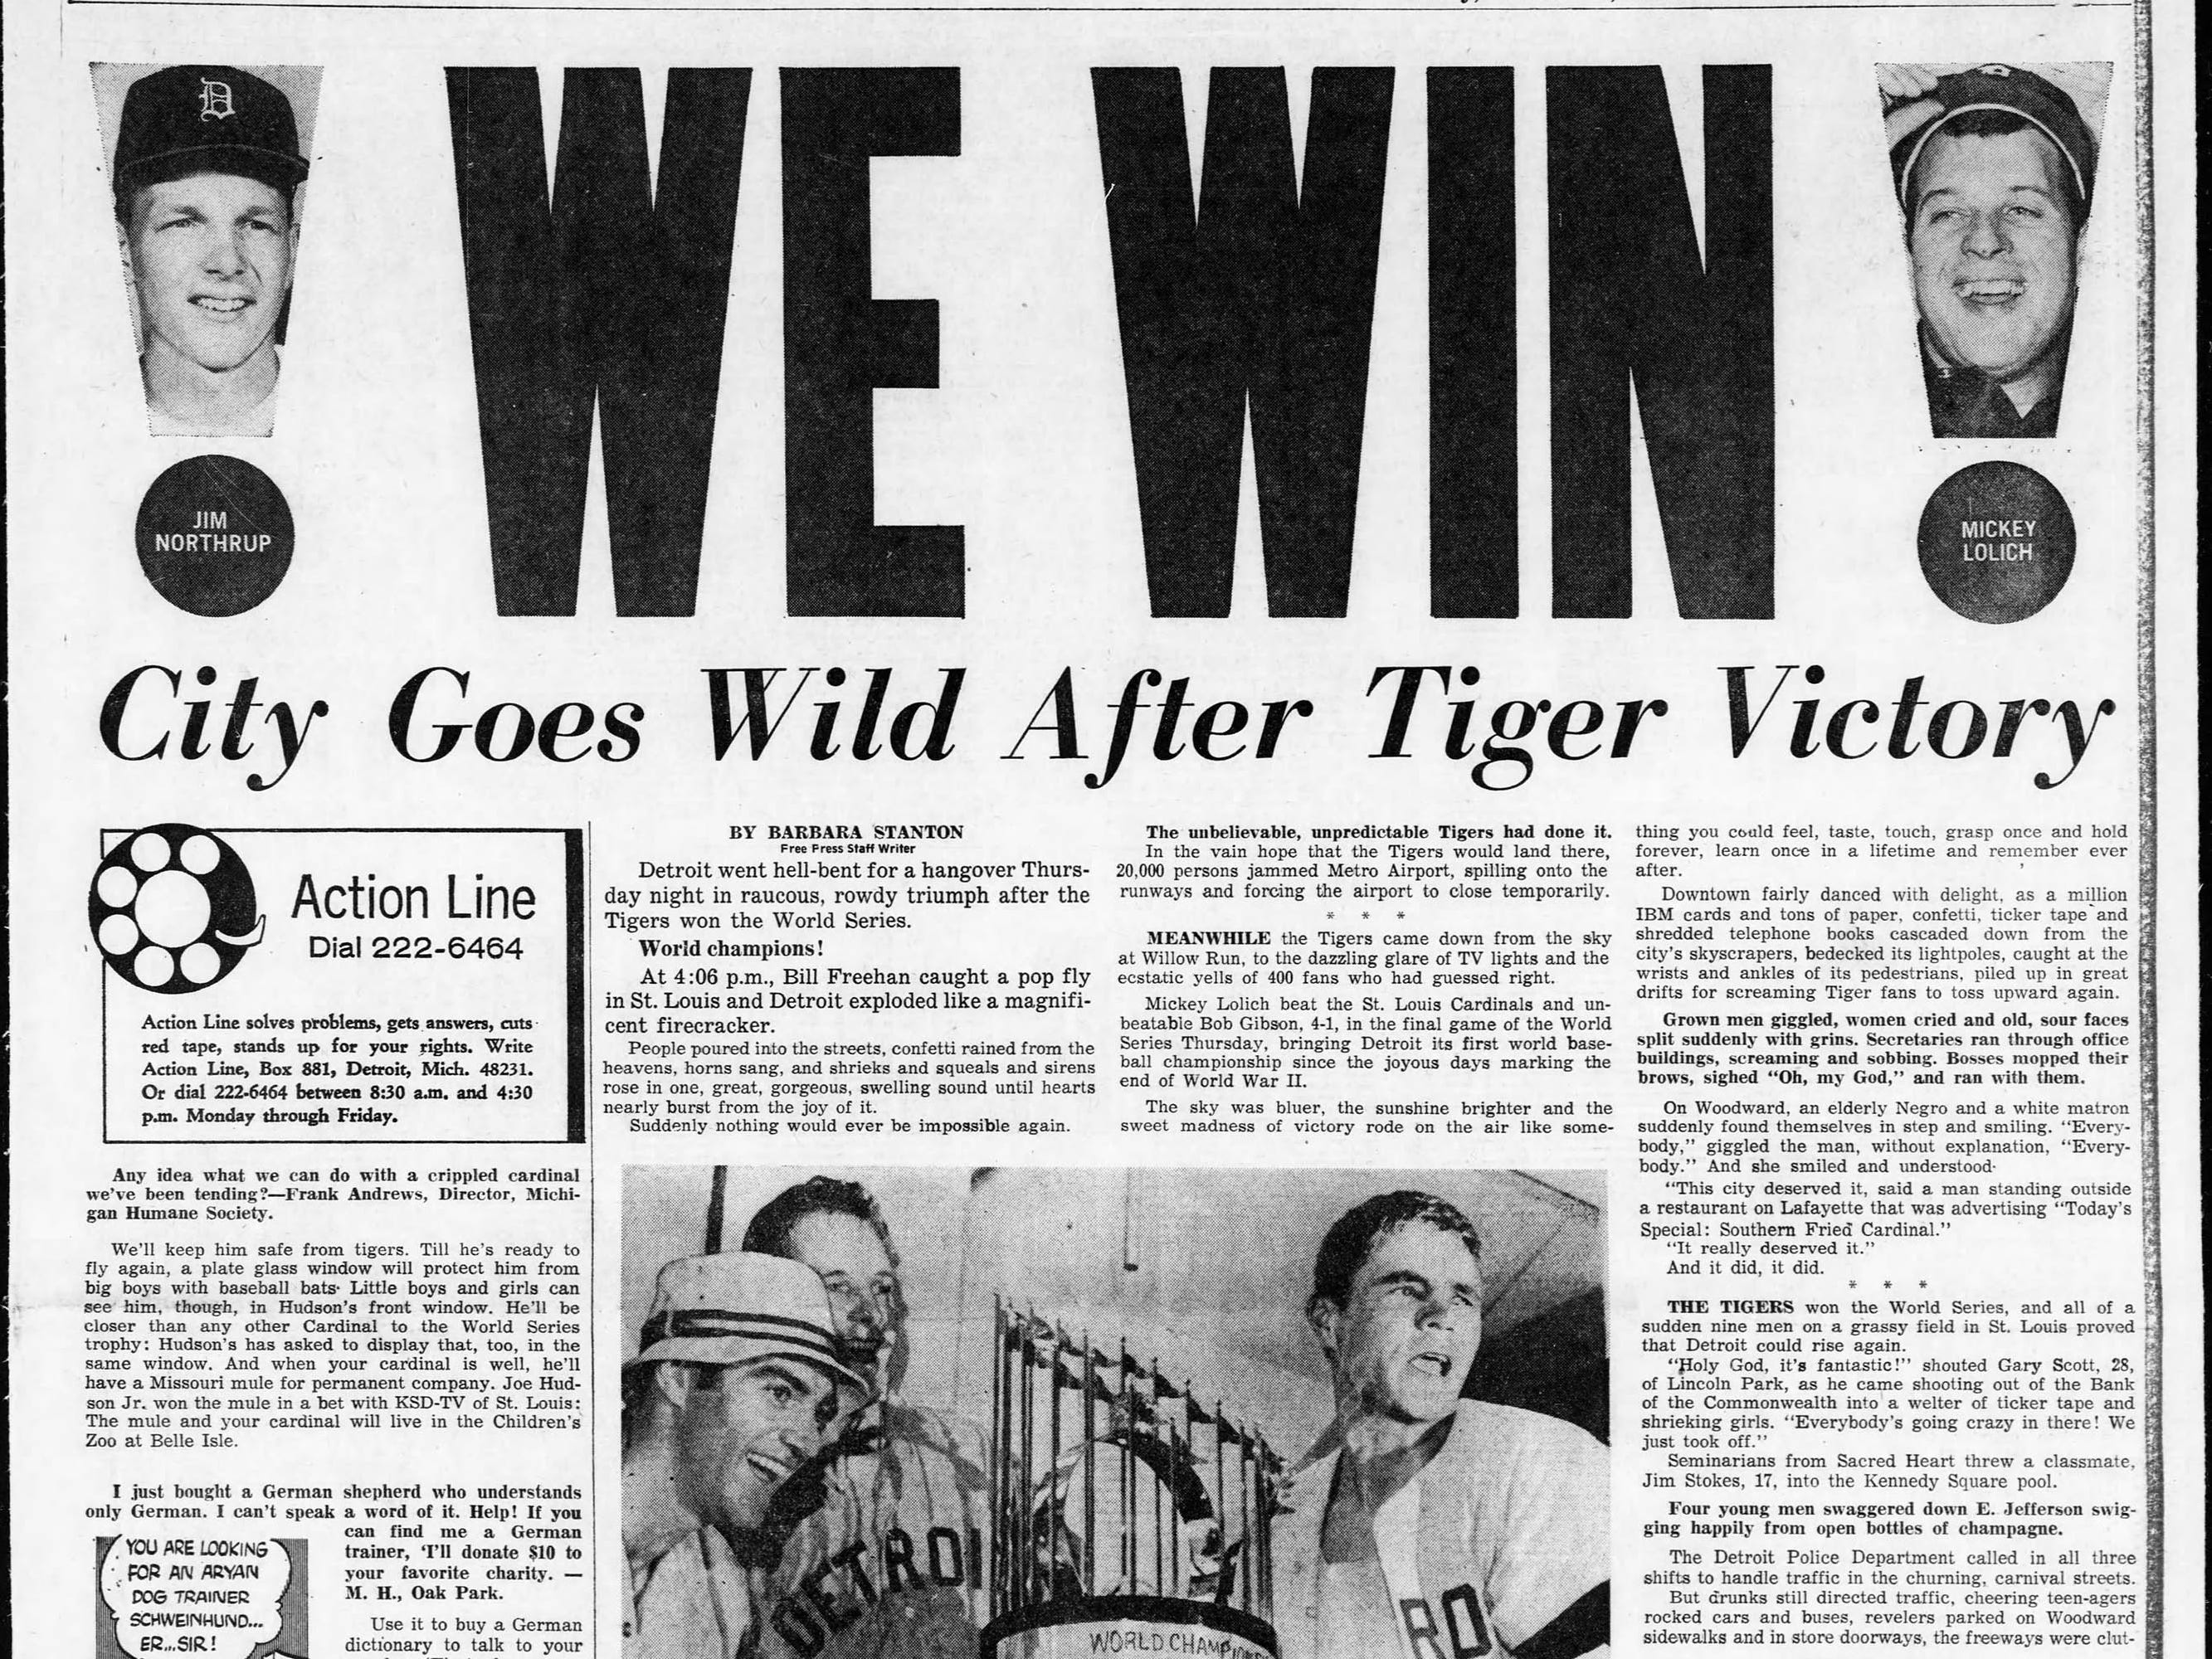 Page 1 of the Detroit Free Press dated Friday, Oct. 11, 1968. The day before, the Detroit Tigers beat the St. Louis Cardinals in seven games to win the World Series.